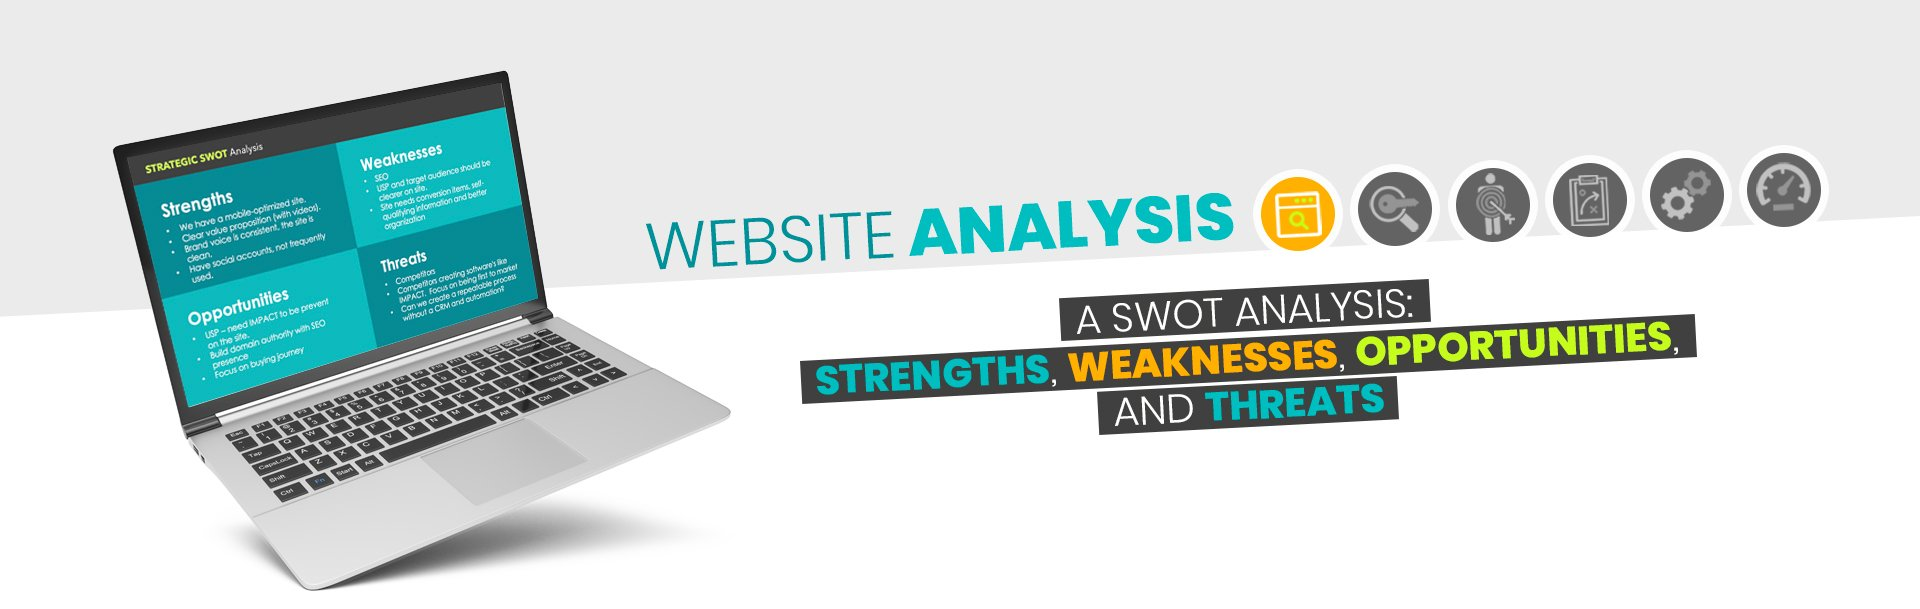 Website Analysis - SWOT